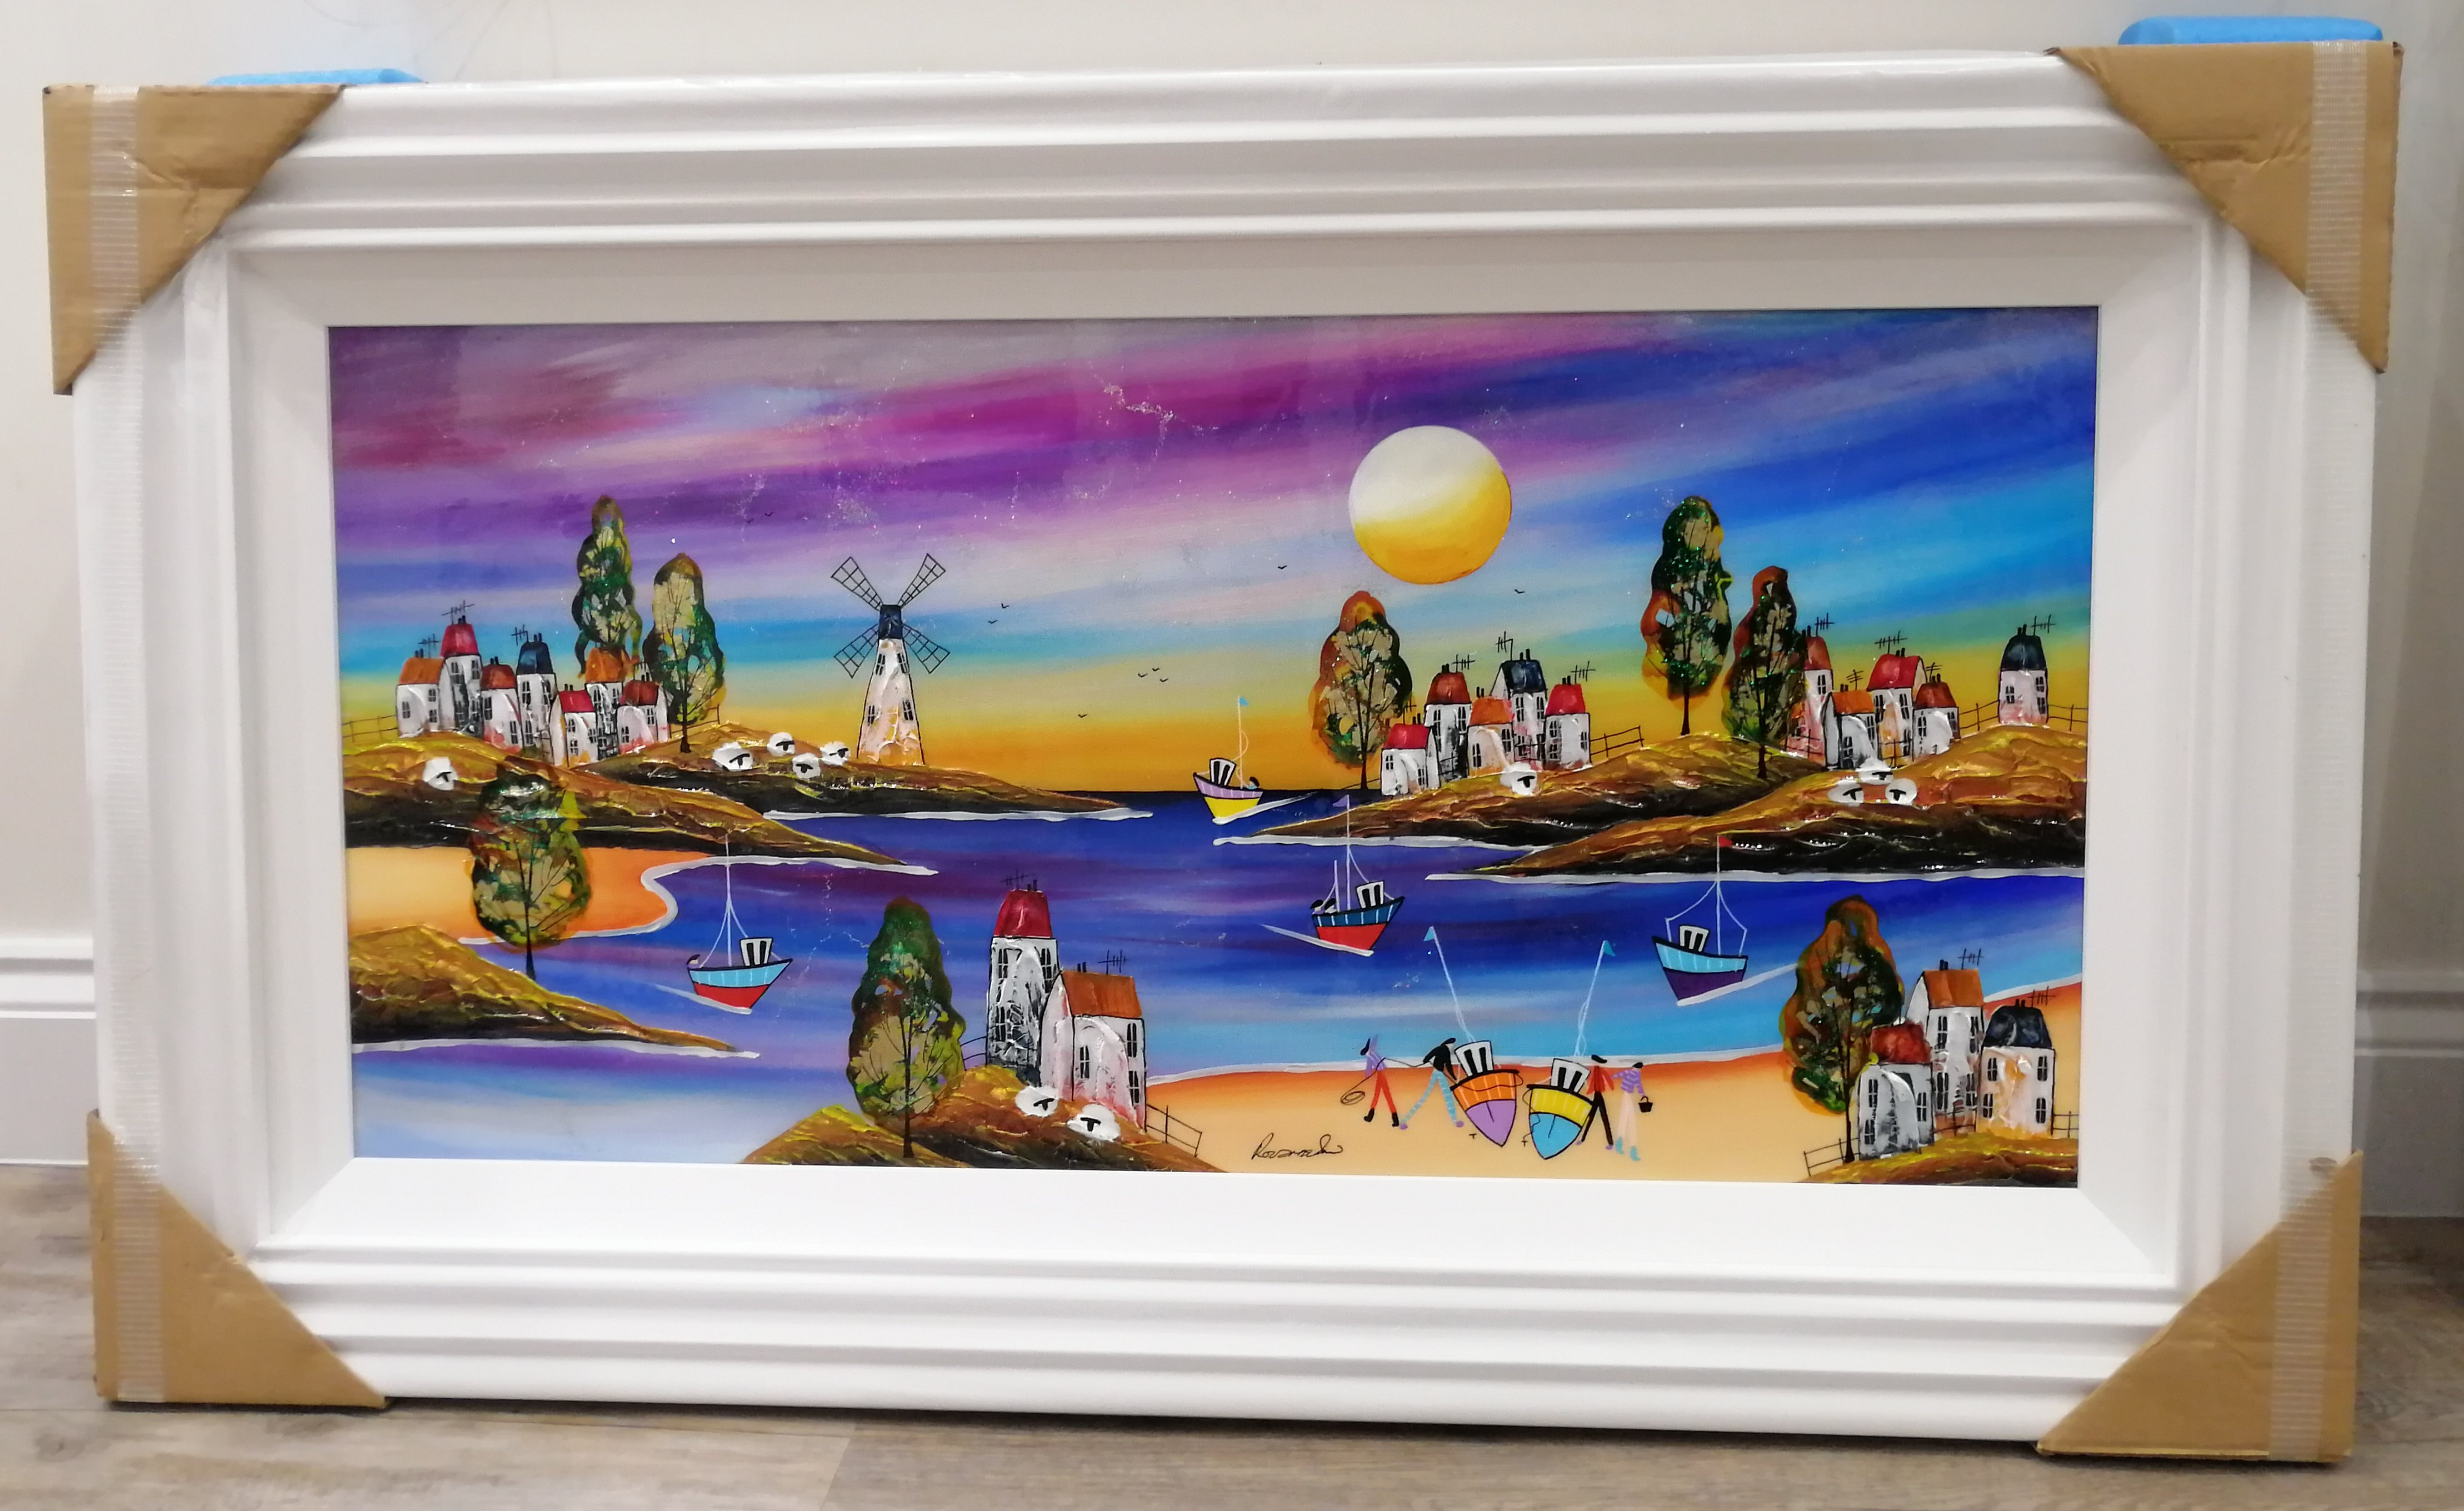 Sunset Over The Beach (18x36) by Rozanne Bell